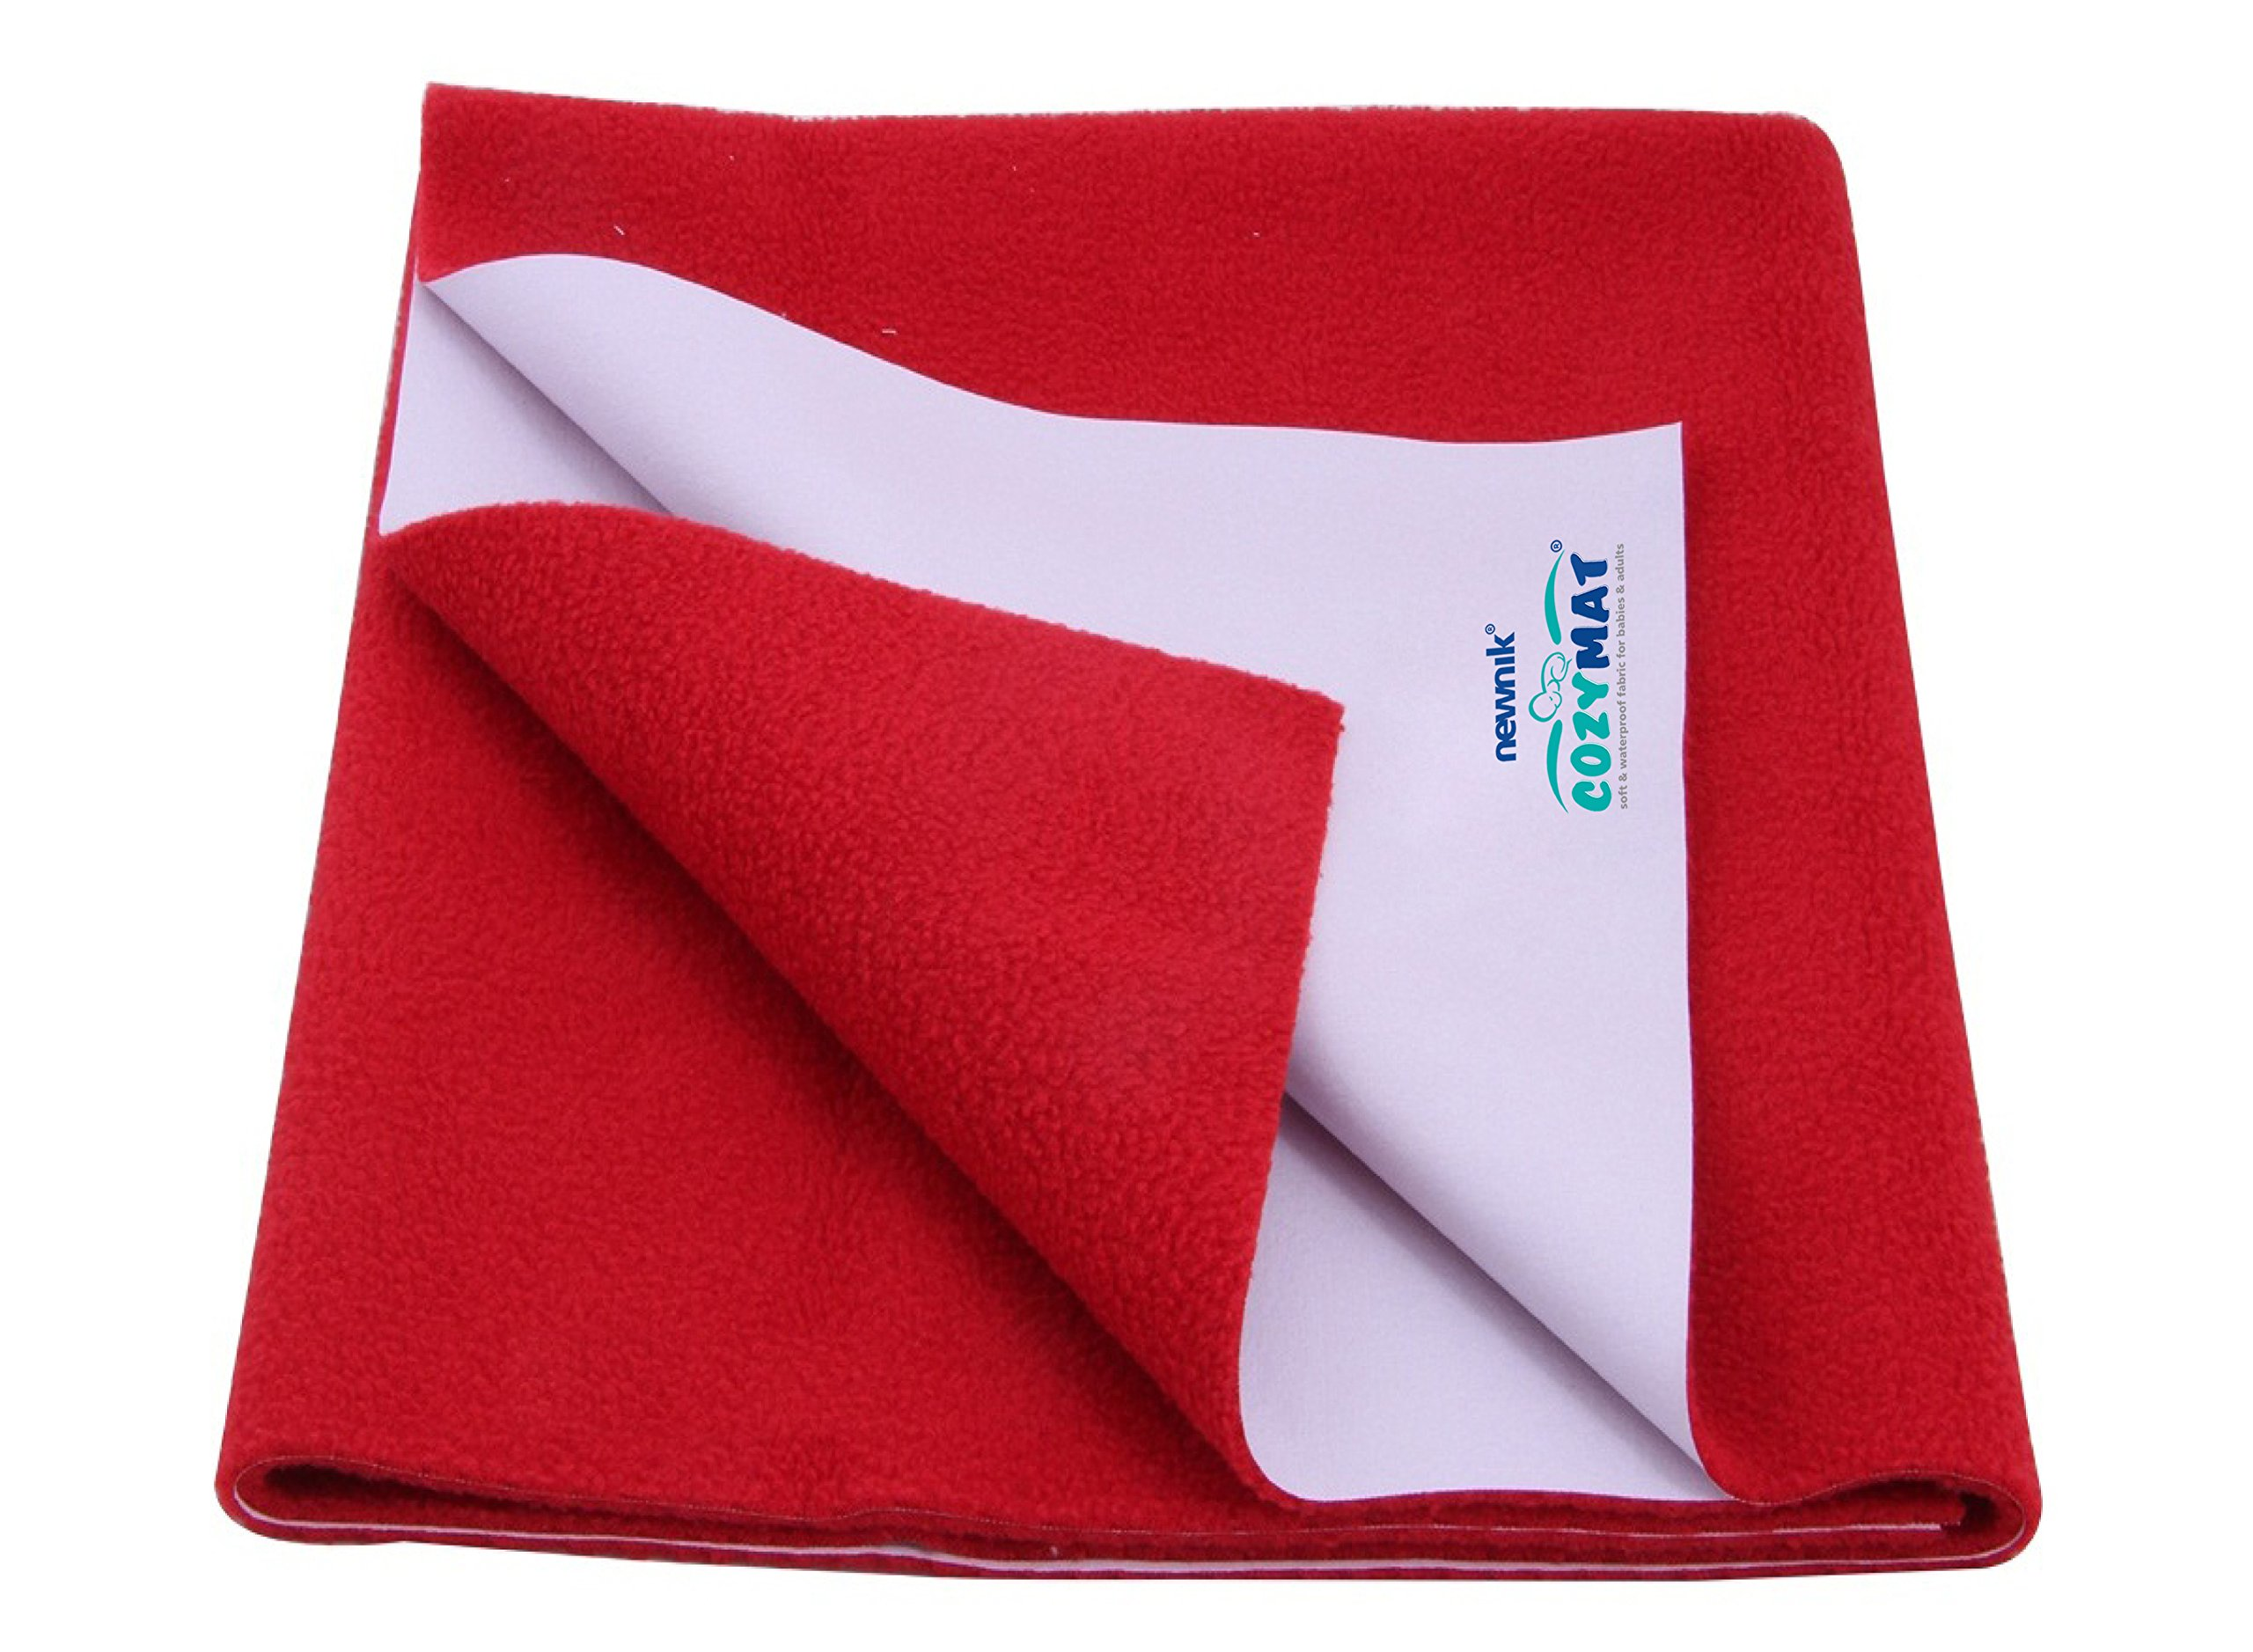 Cozymat Dry Sheet Waterproof Breathable Bed Protector (Size: 70cm X 100cm) Cherry Red, Medium by cozymat